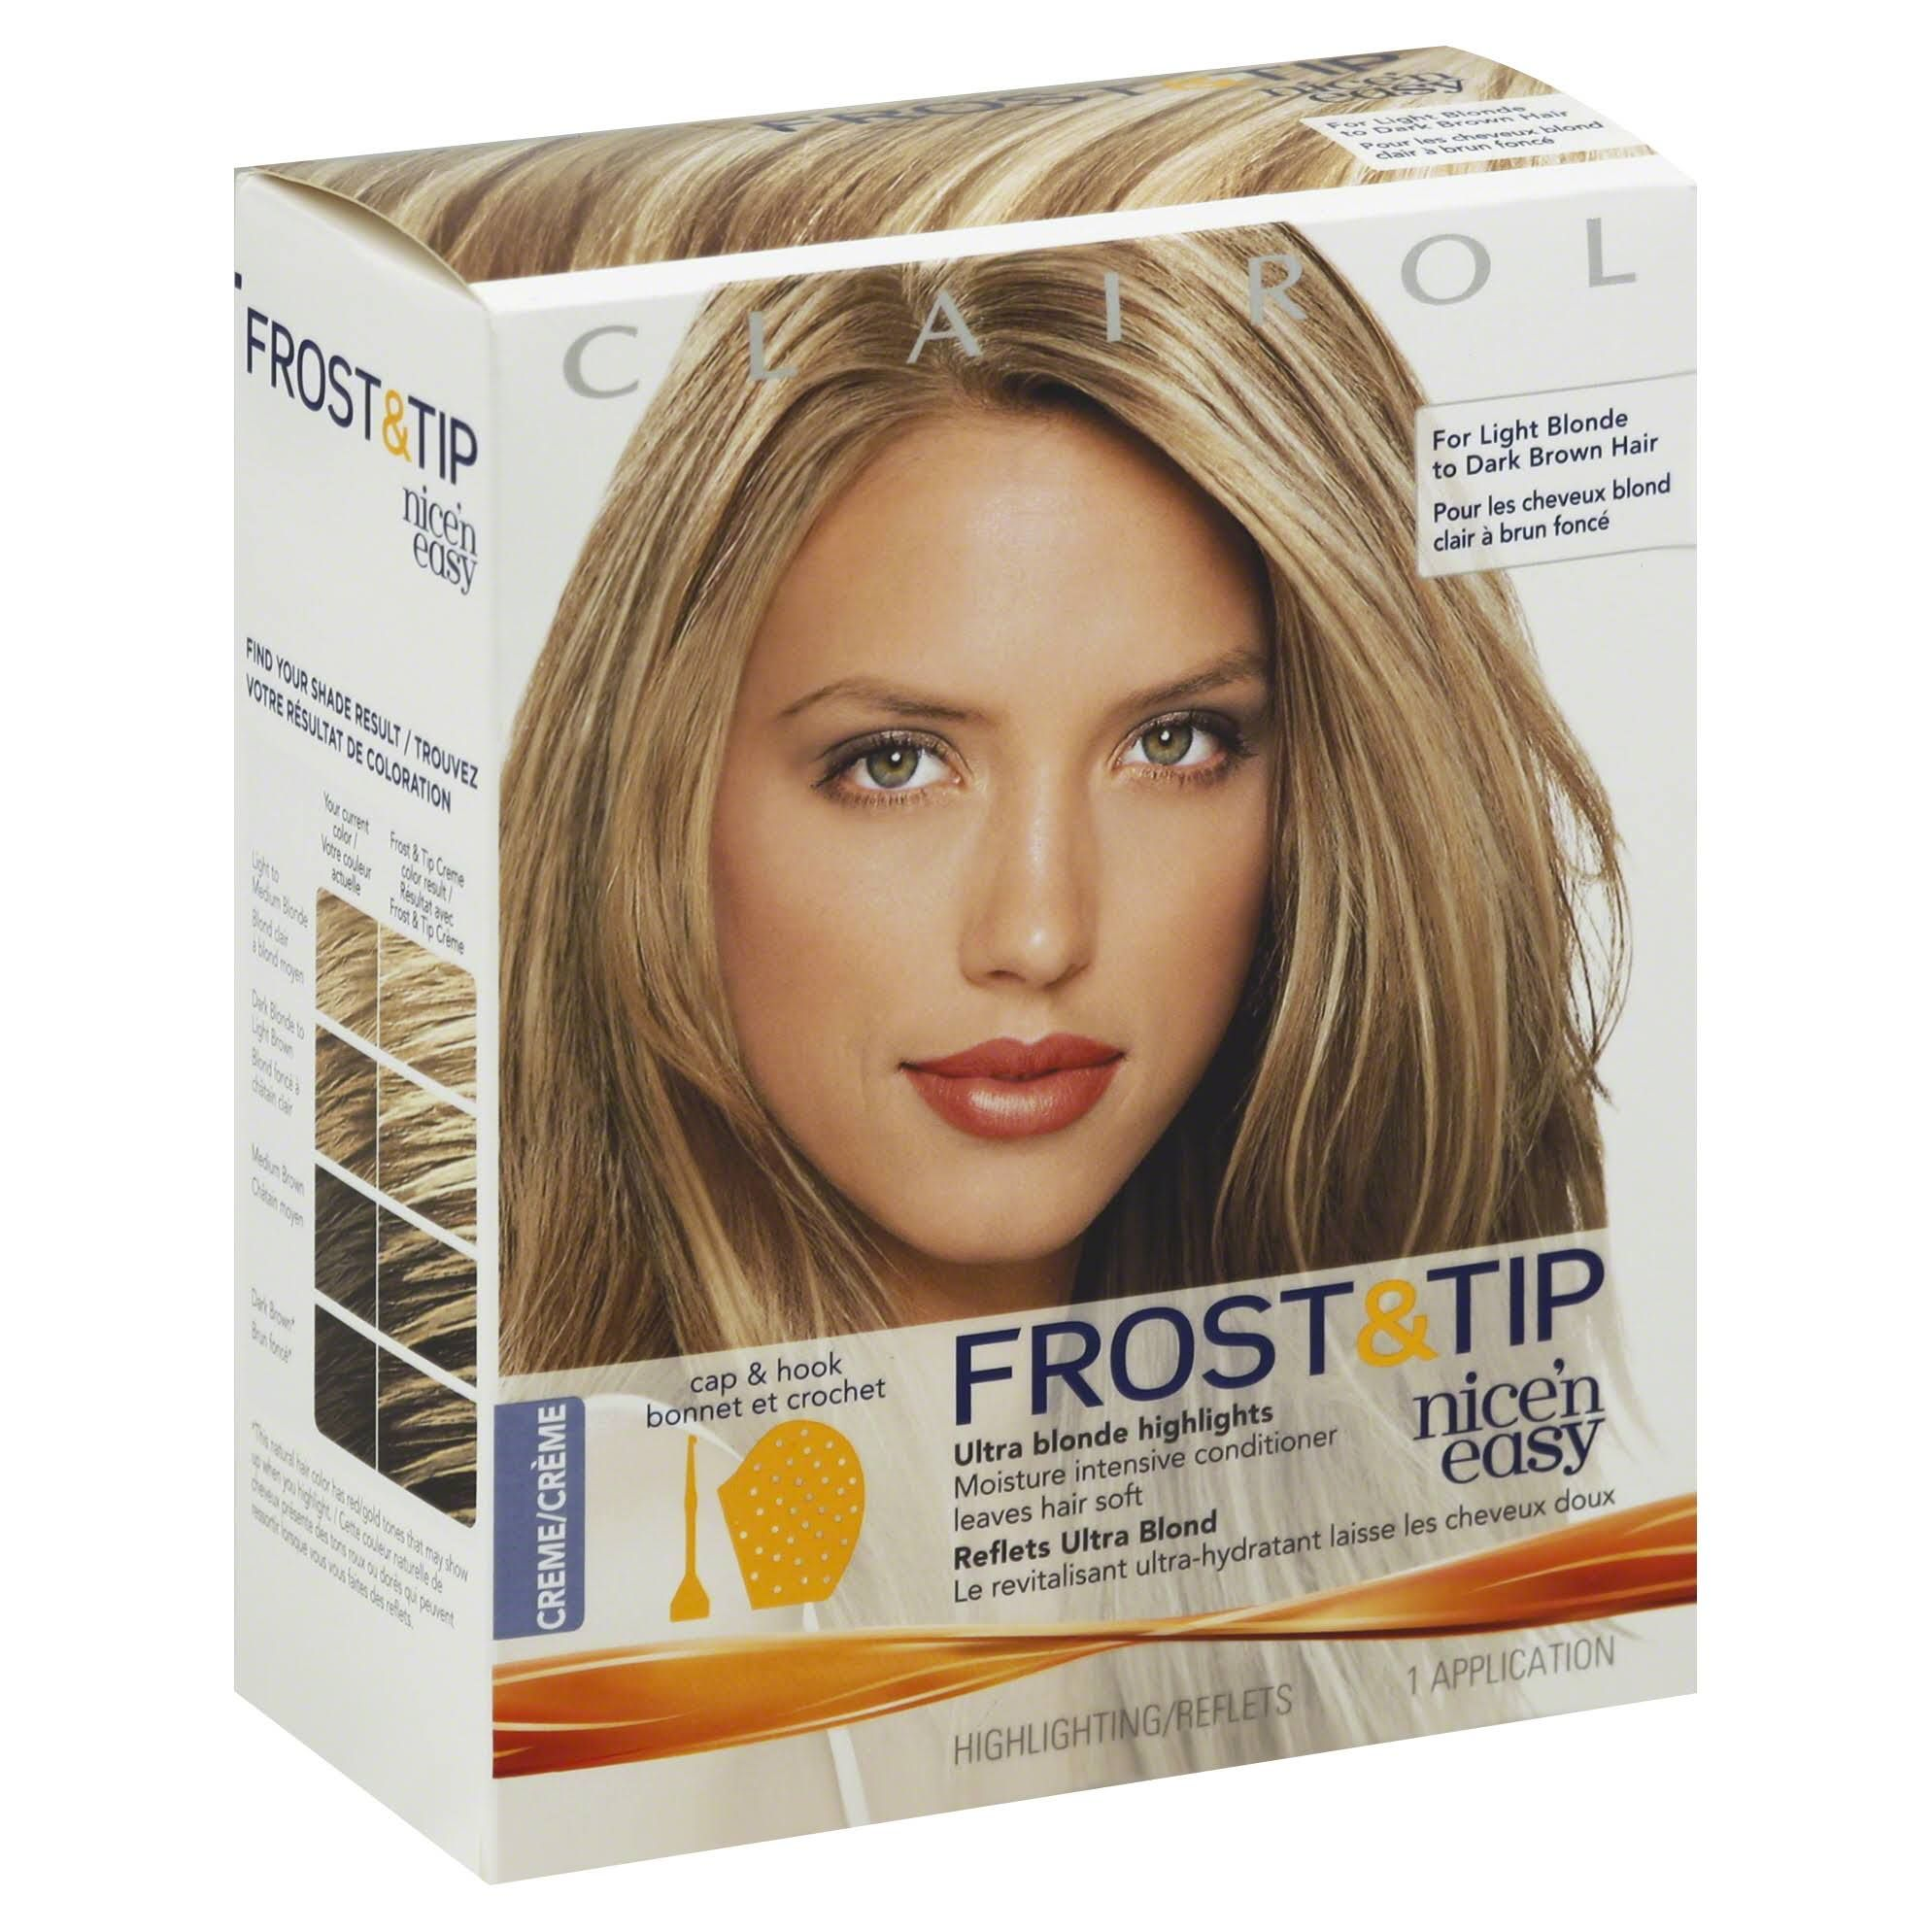 Clairol frost and tip instructions